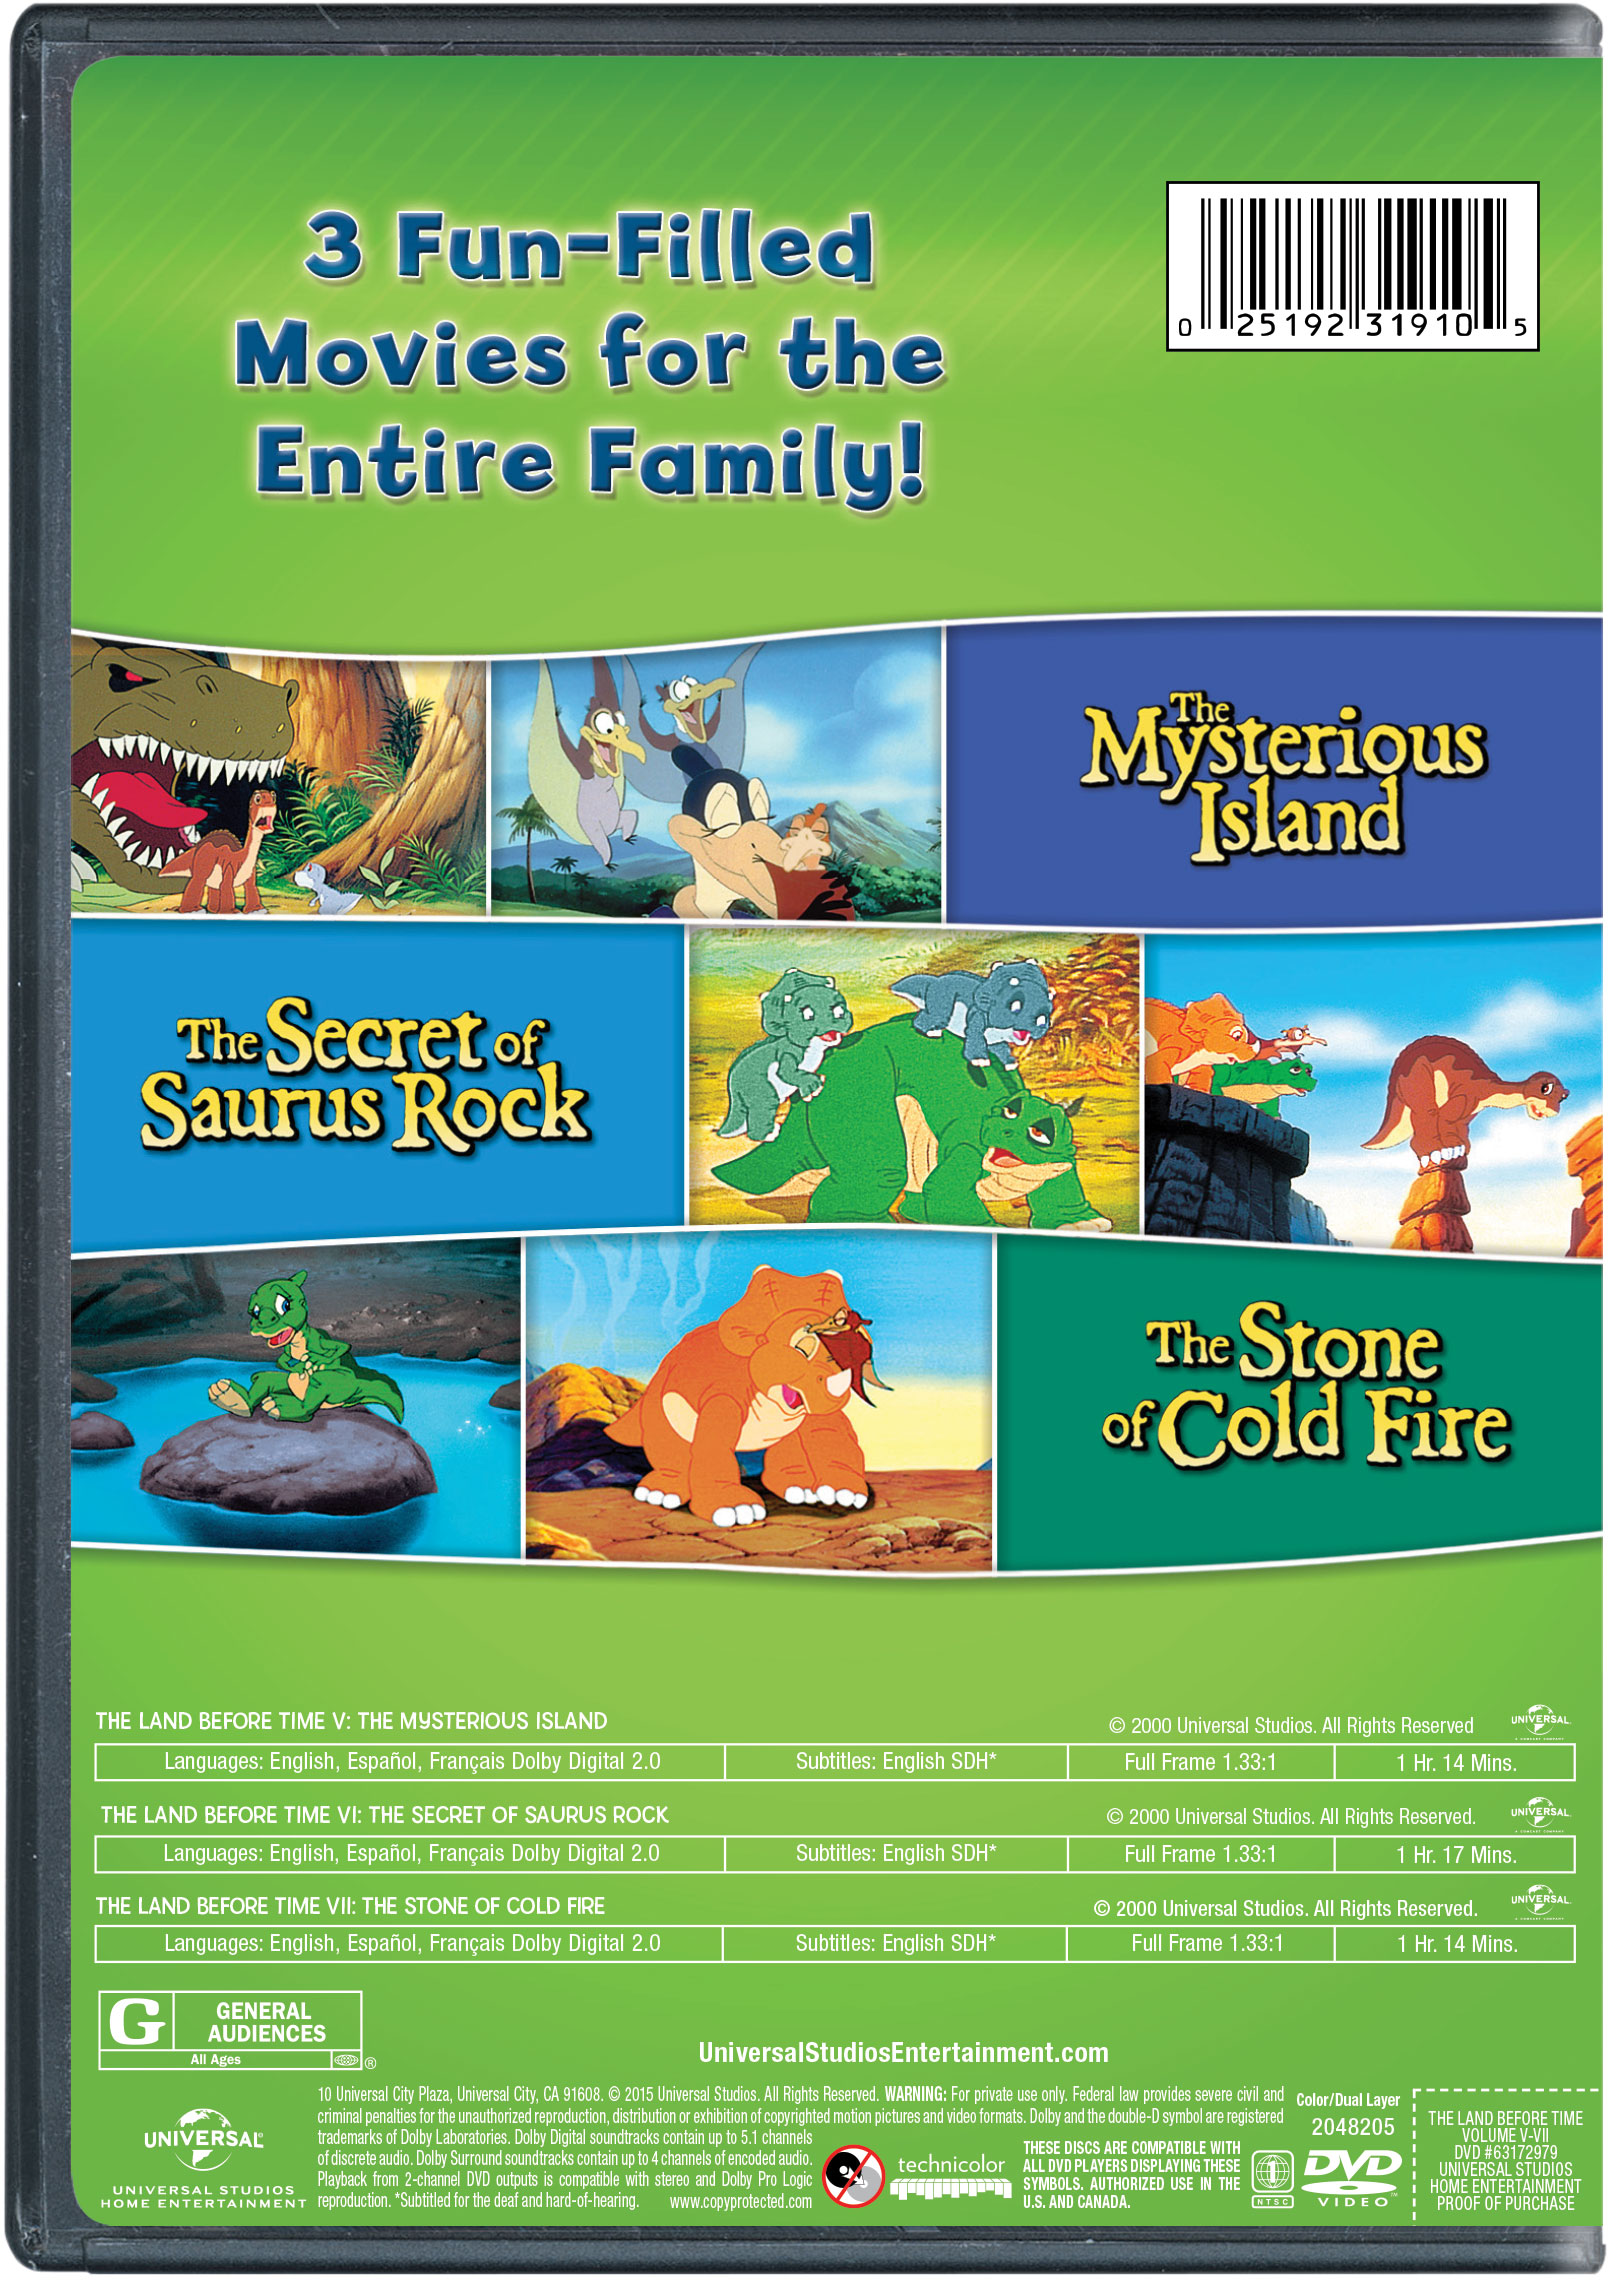 The Land Before Time: The Secret of Saurus Rock | Movie Page | DVD